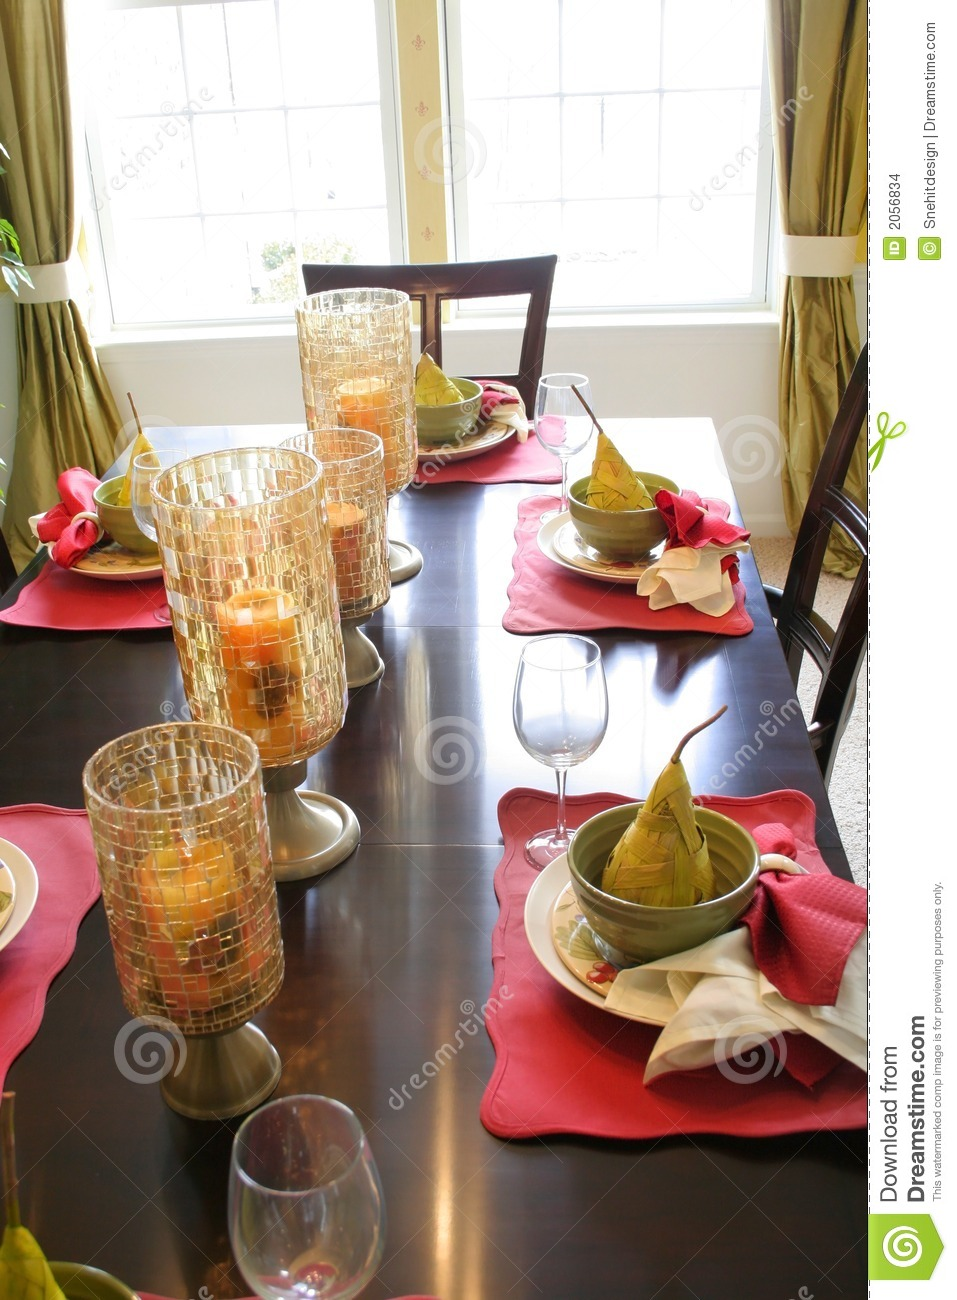 more similar stock images of dining table set up